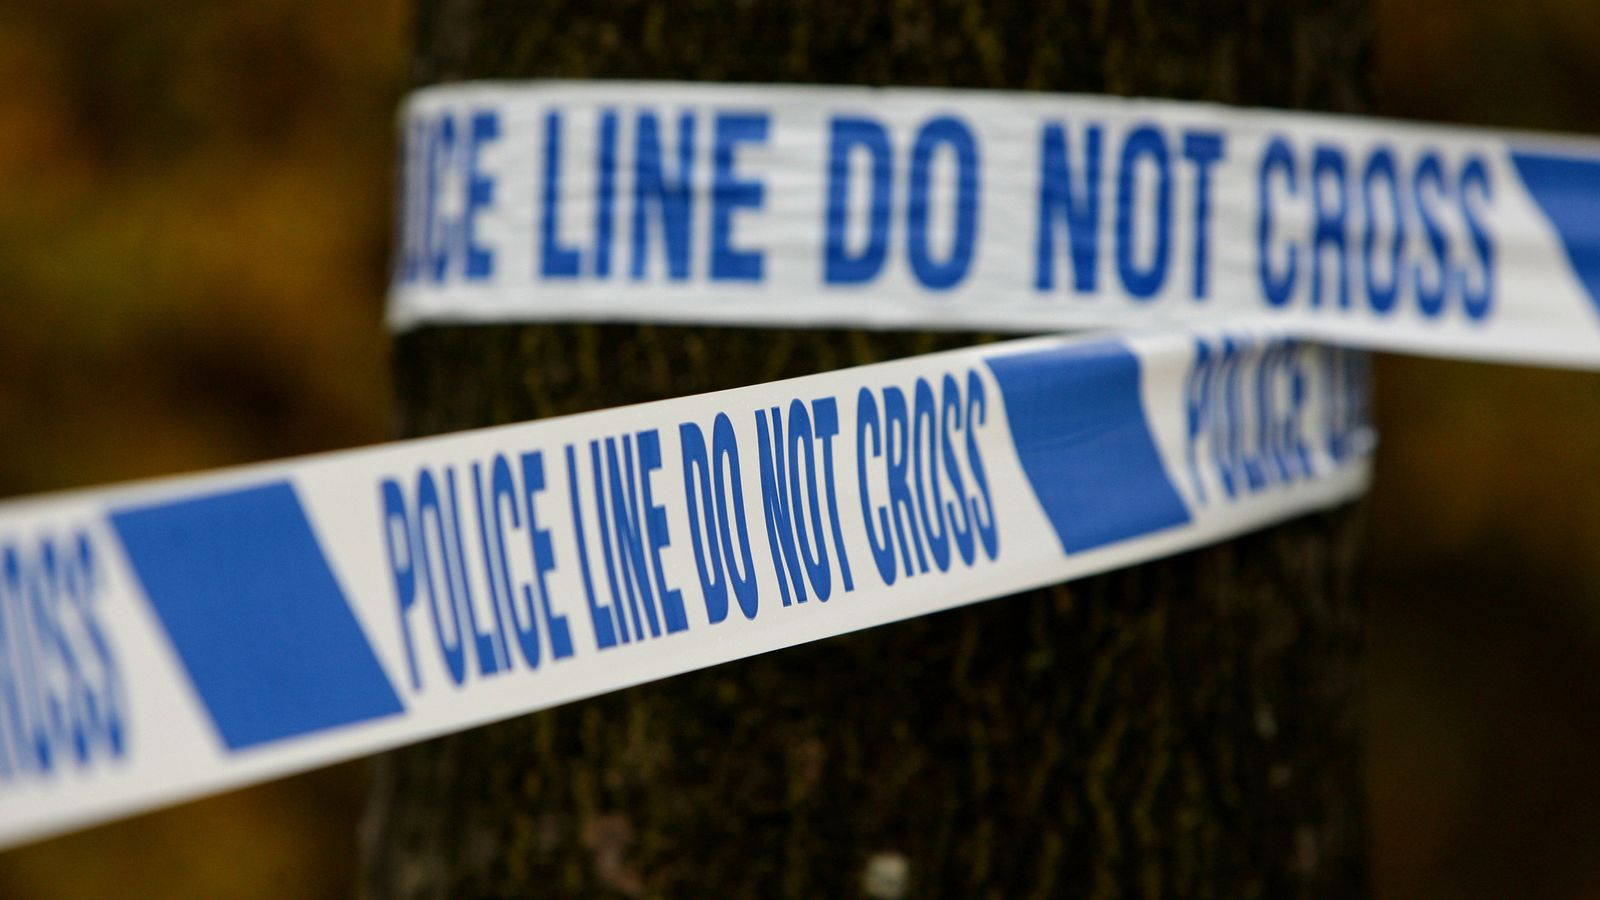 Hampshire: Man, 52, arrested after two bodies found at property in Basingstoke